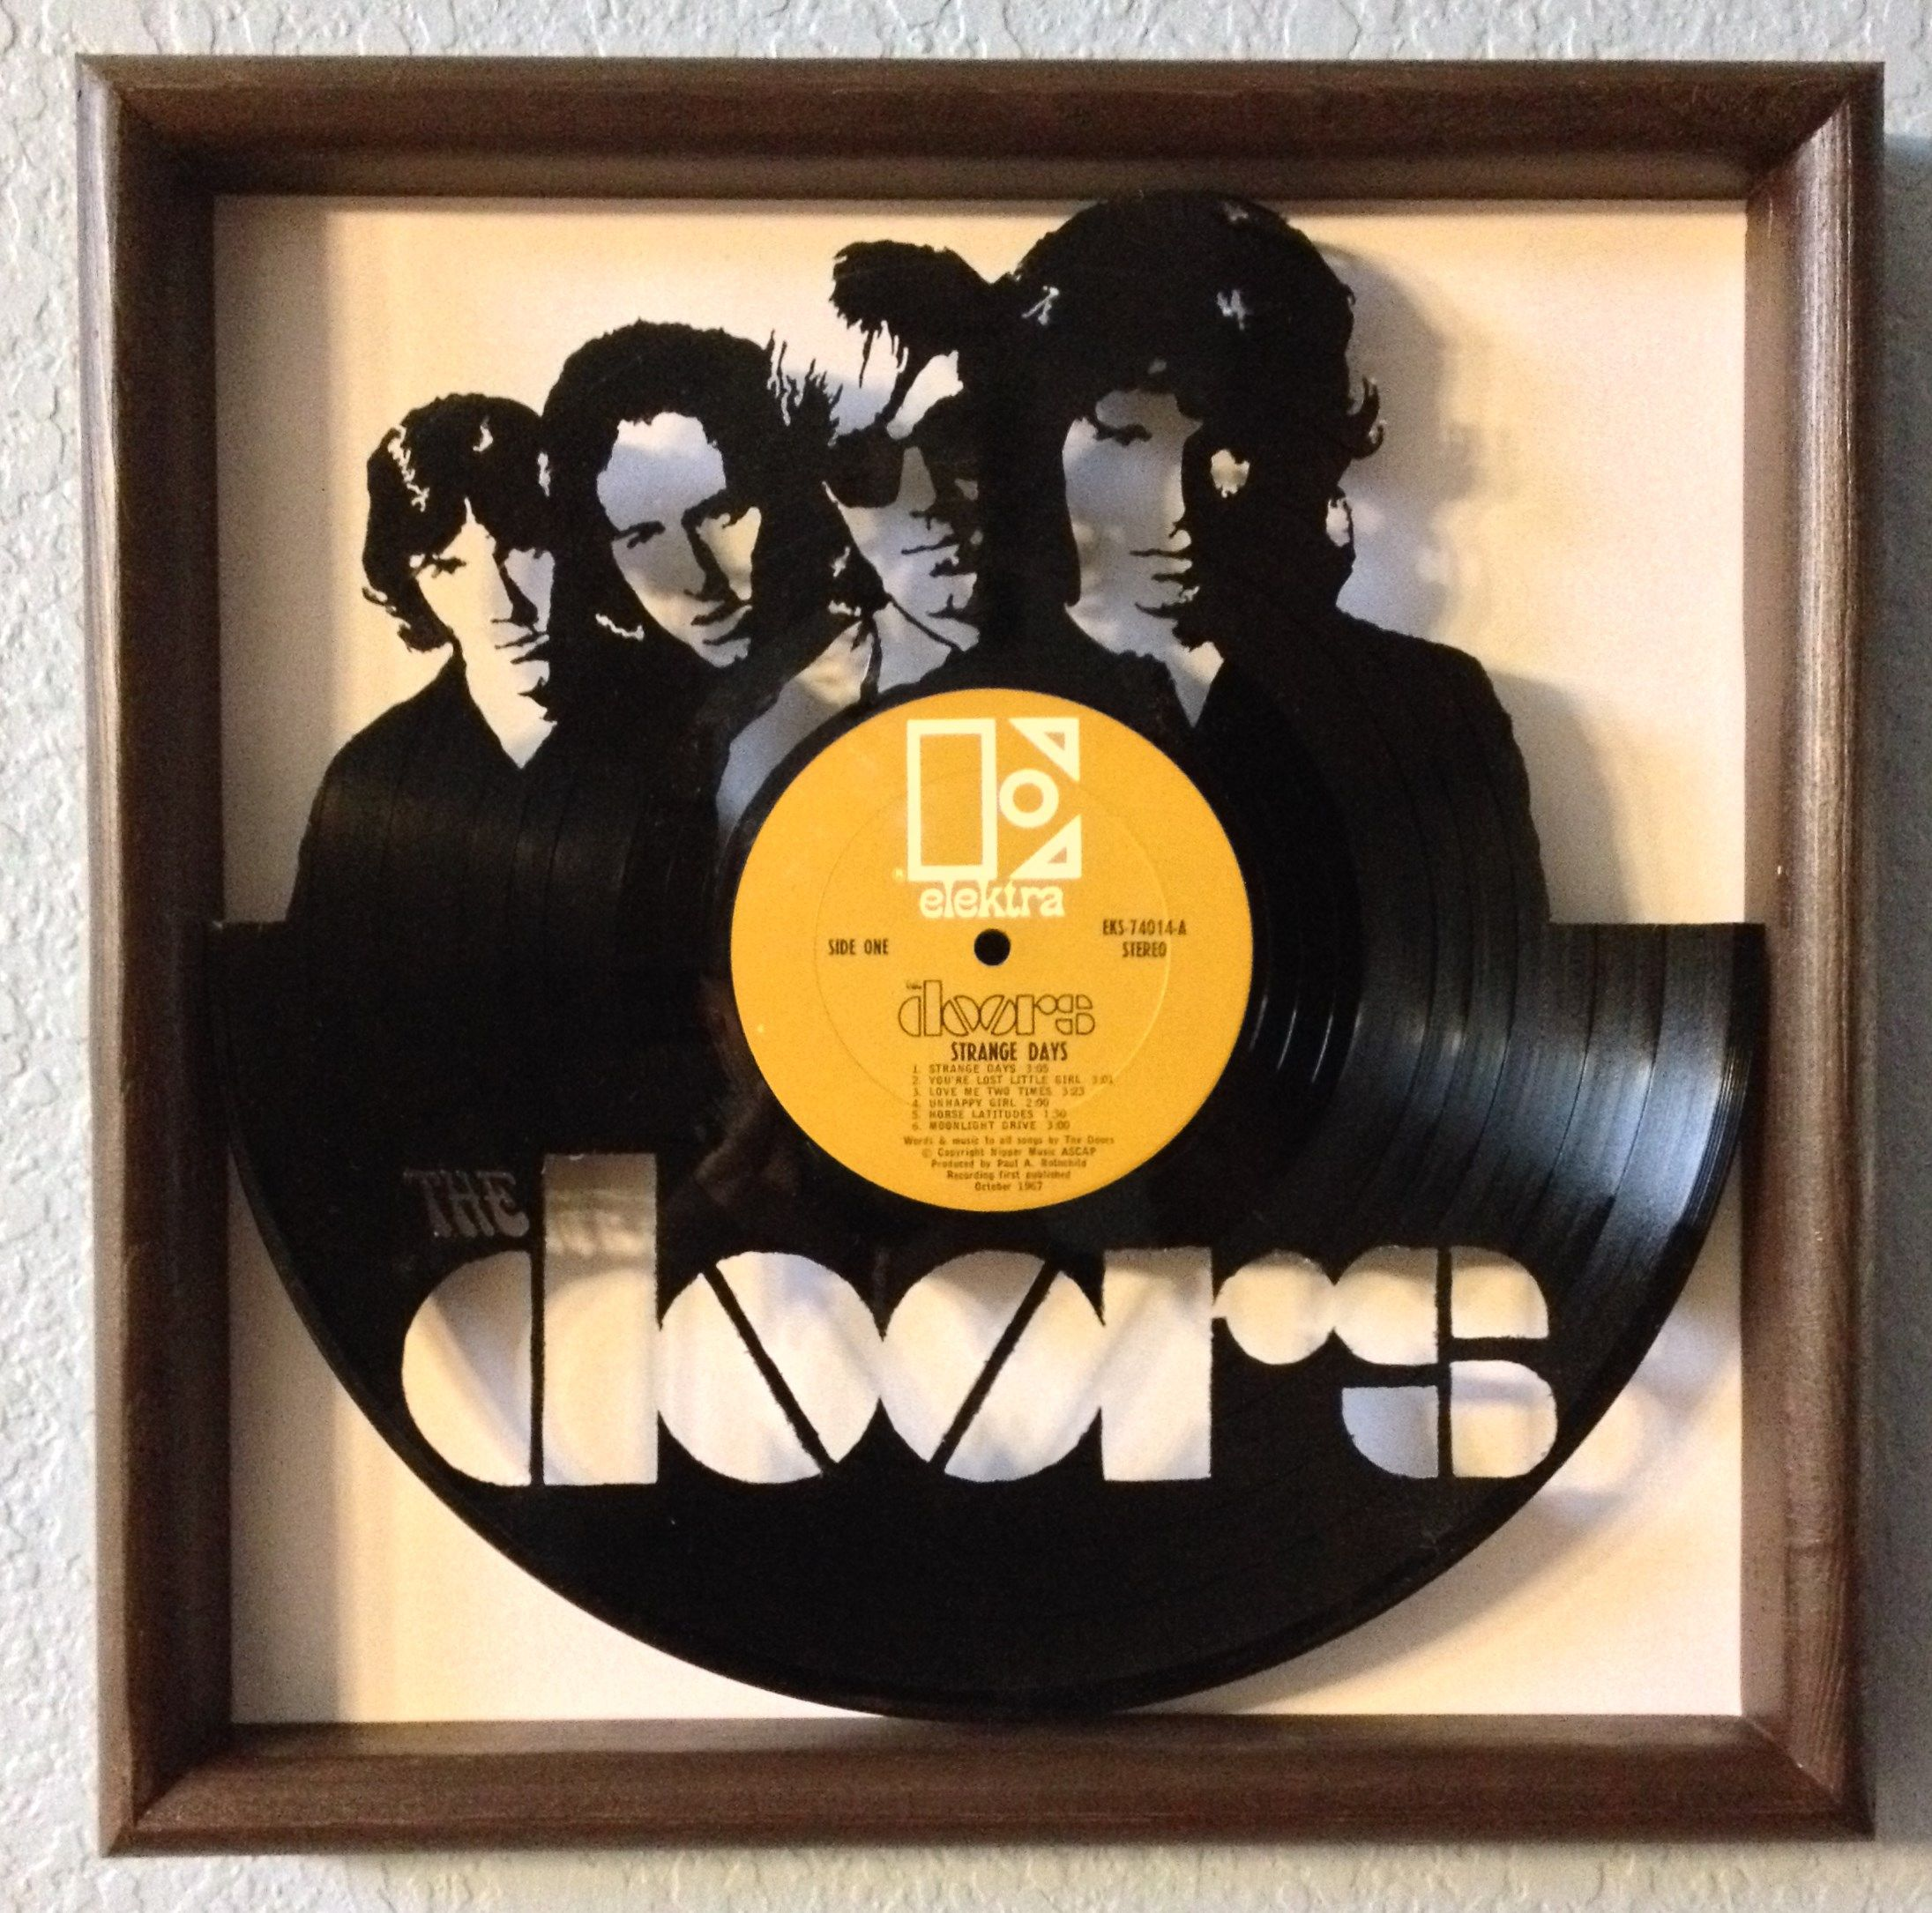 LP Vinyl Art - The Doors - hand cut from their record album \